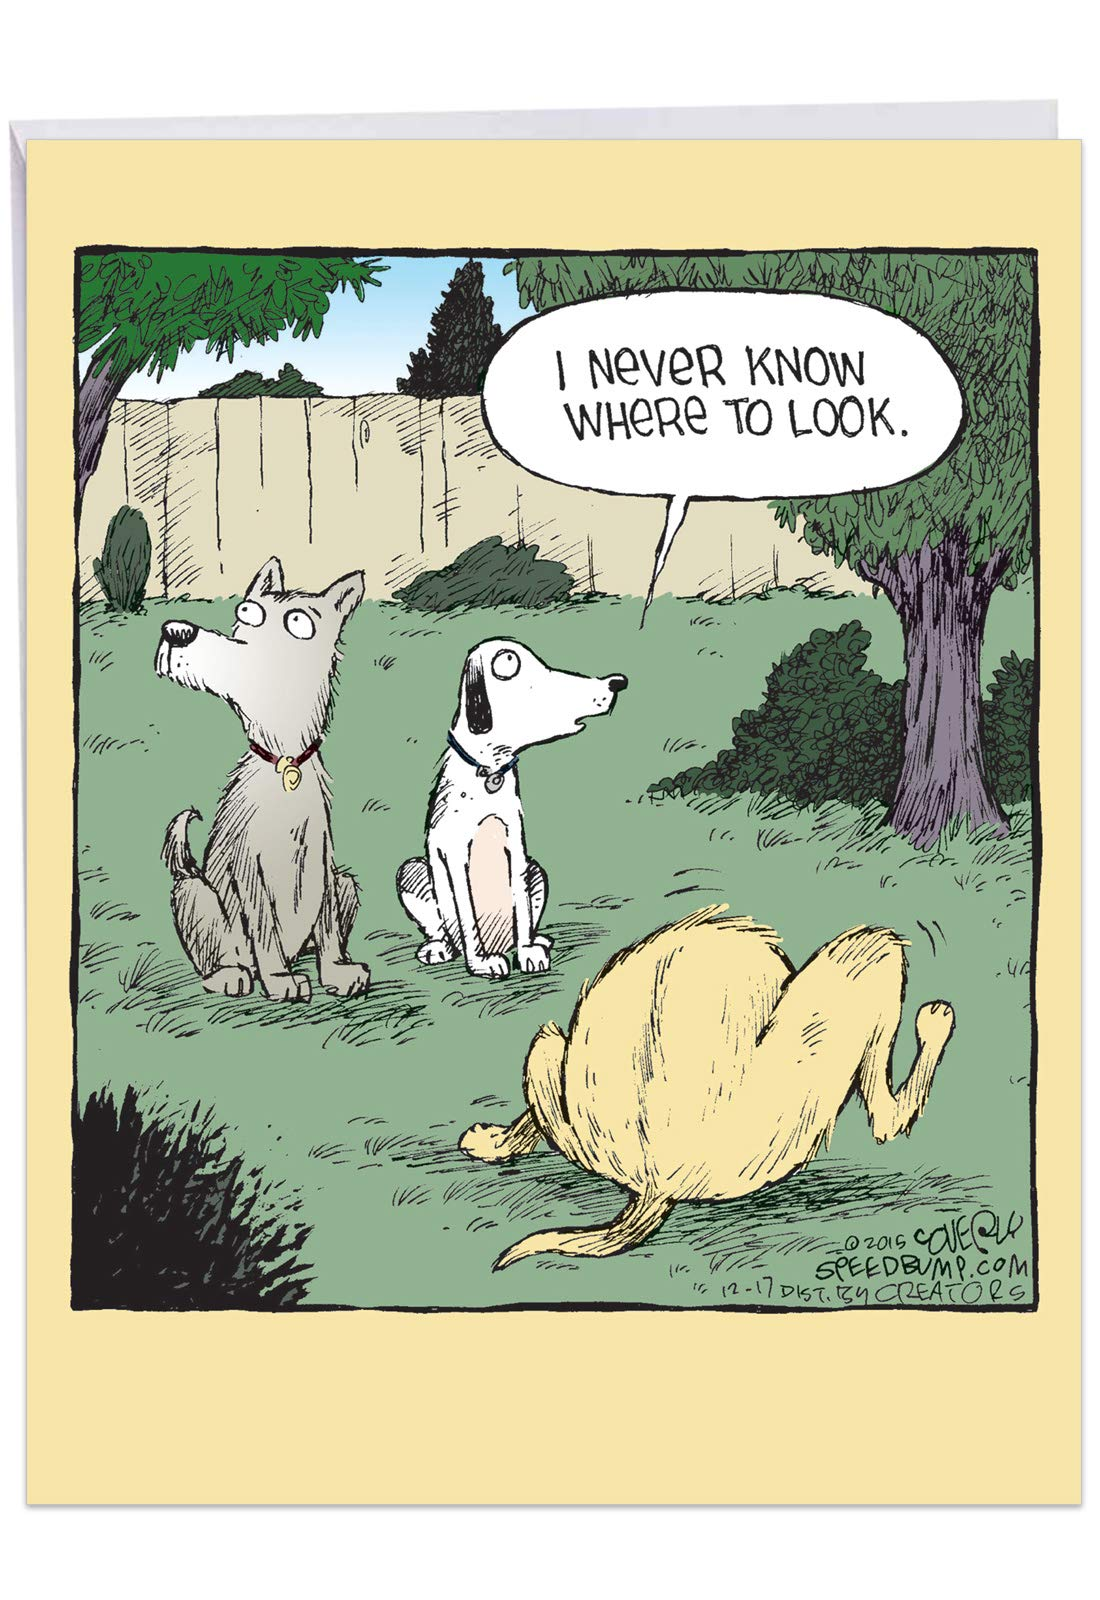 Look Away - Funny Dog Birthday Card with Envelope (Extra Large 8.5 x 11 Inch) - Adult Humor, Joke Notecard - Hilarious Cartoon Dog Stationery Bday Card J2617BDG